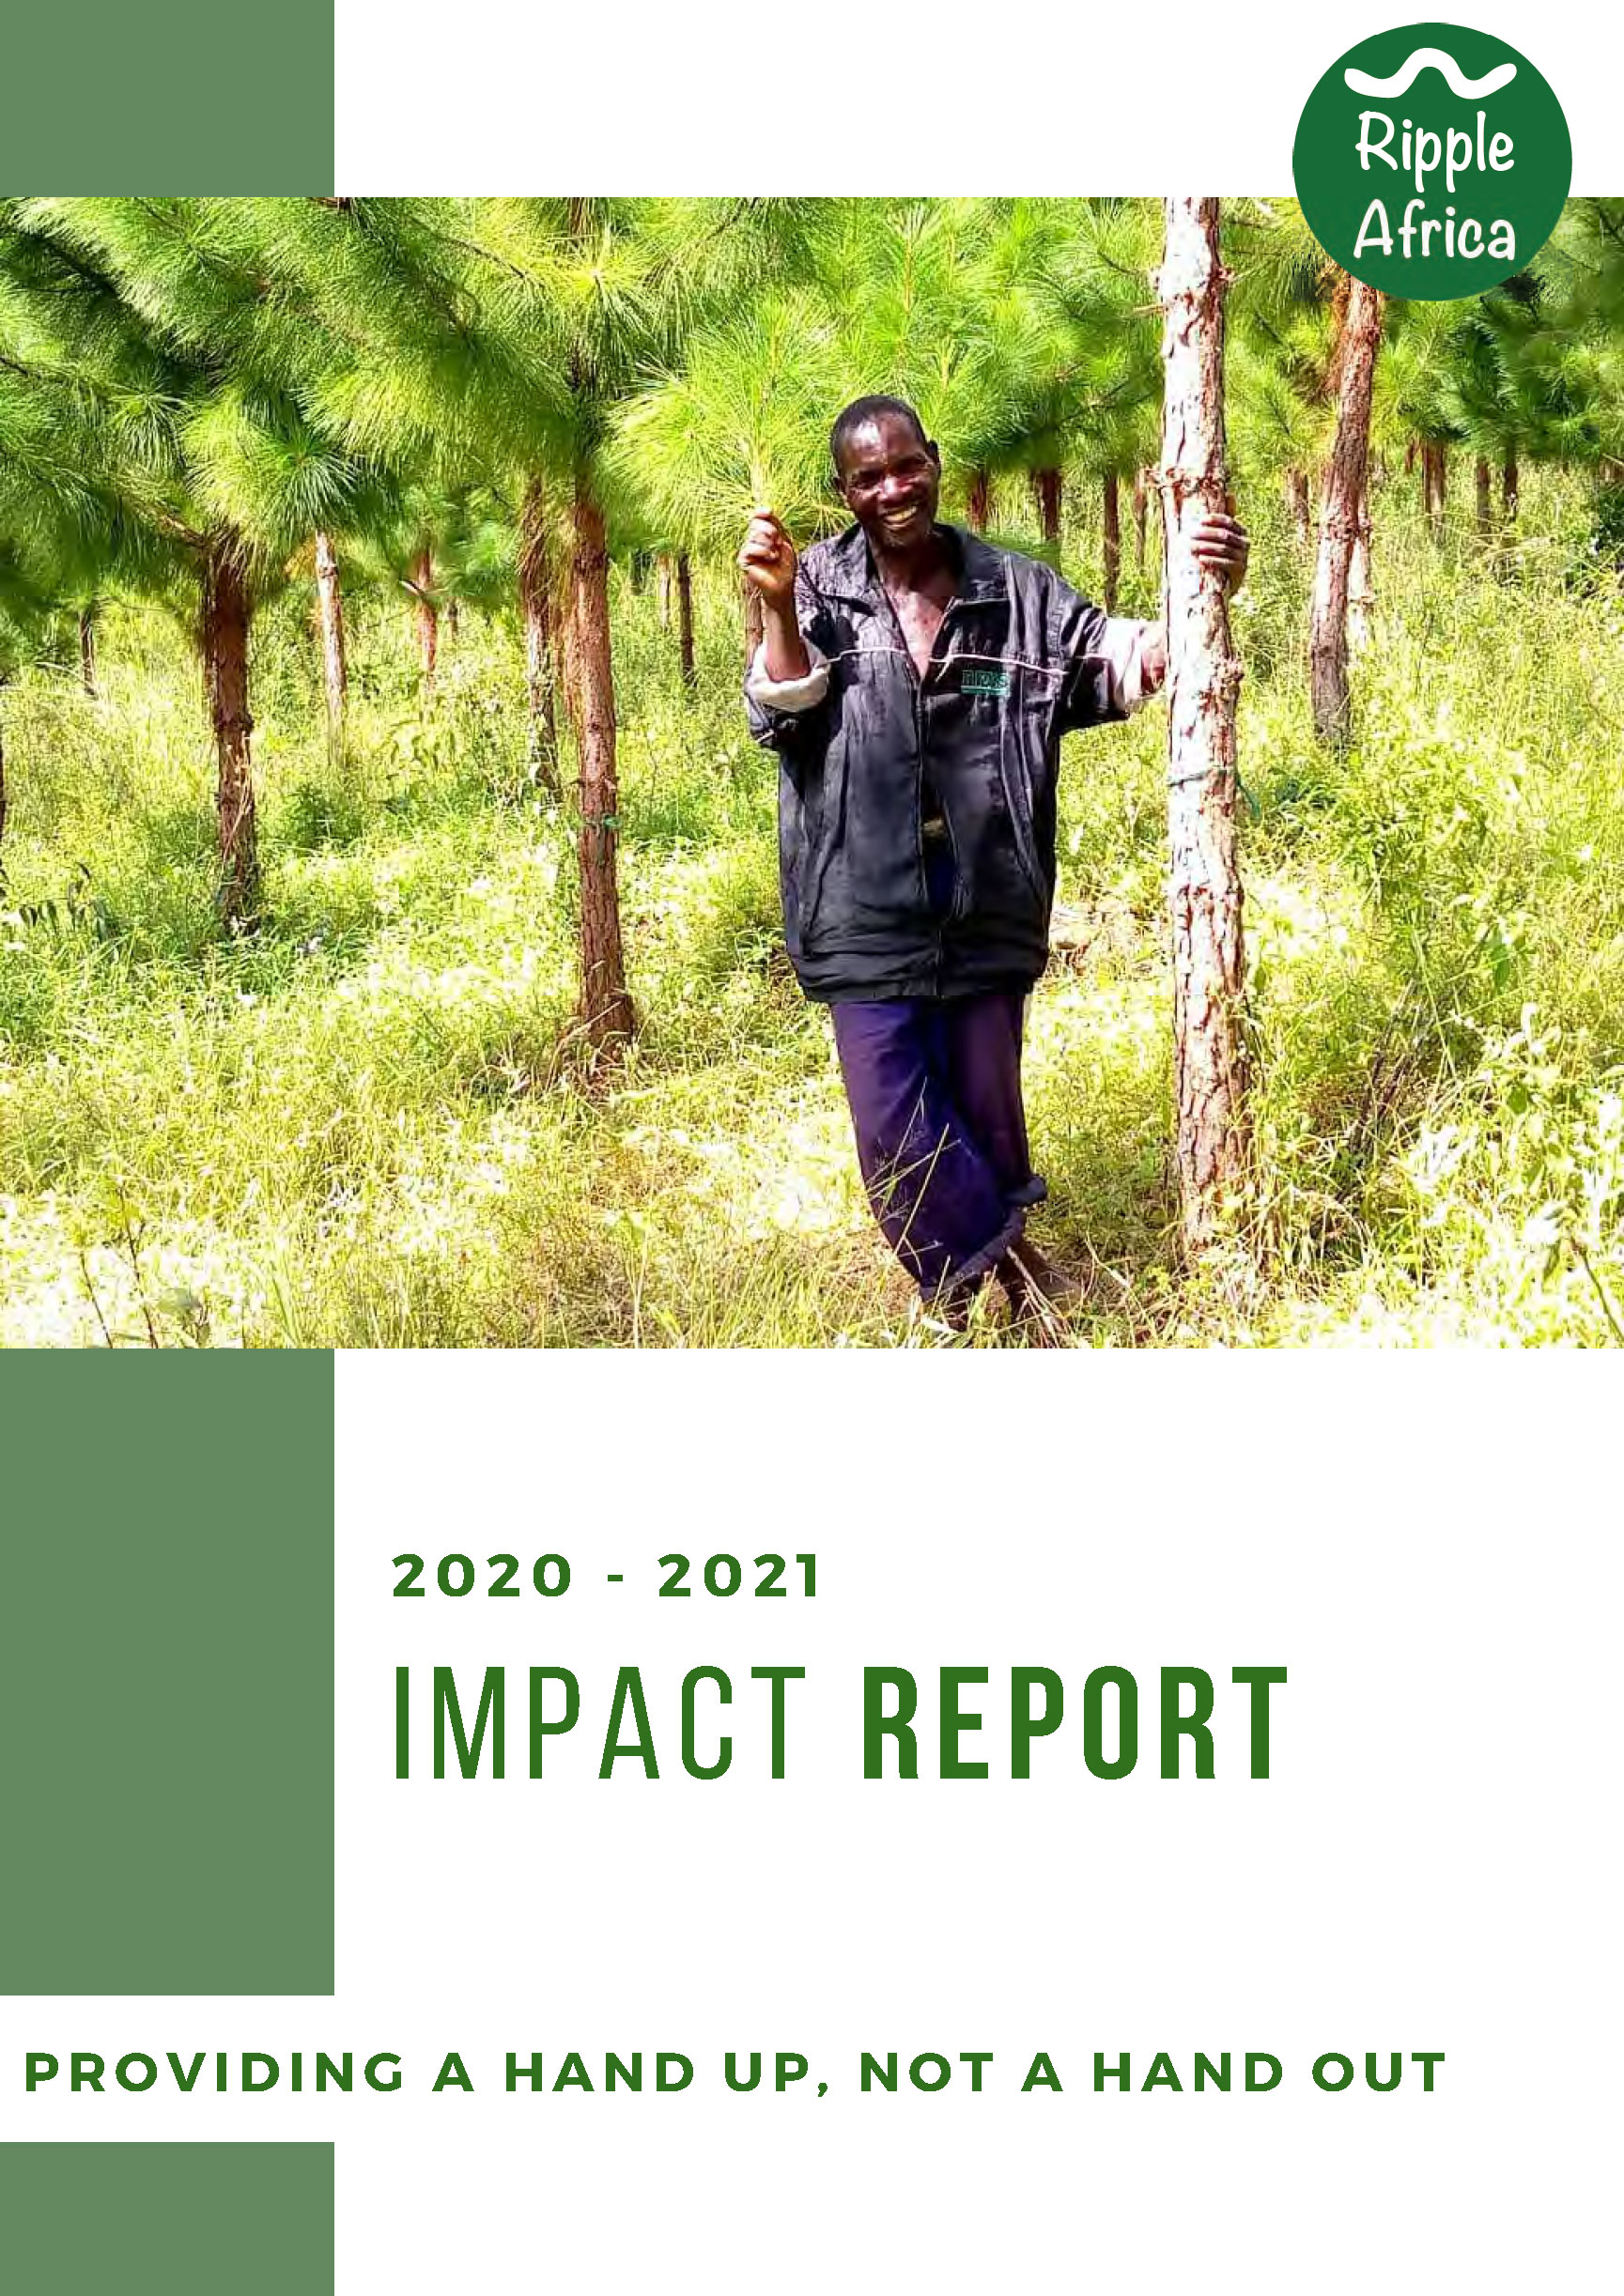 Ripple Africa Impact Report 2020 - 2021 with Accounts-1b